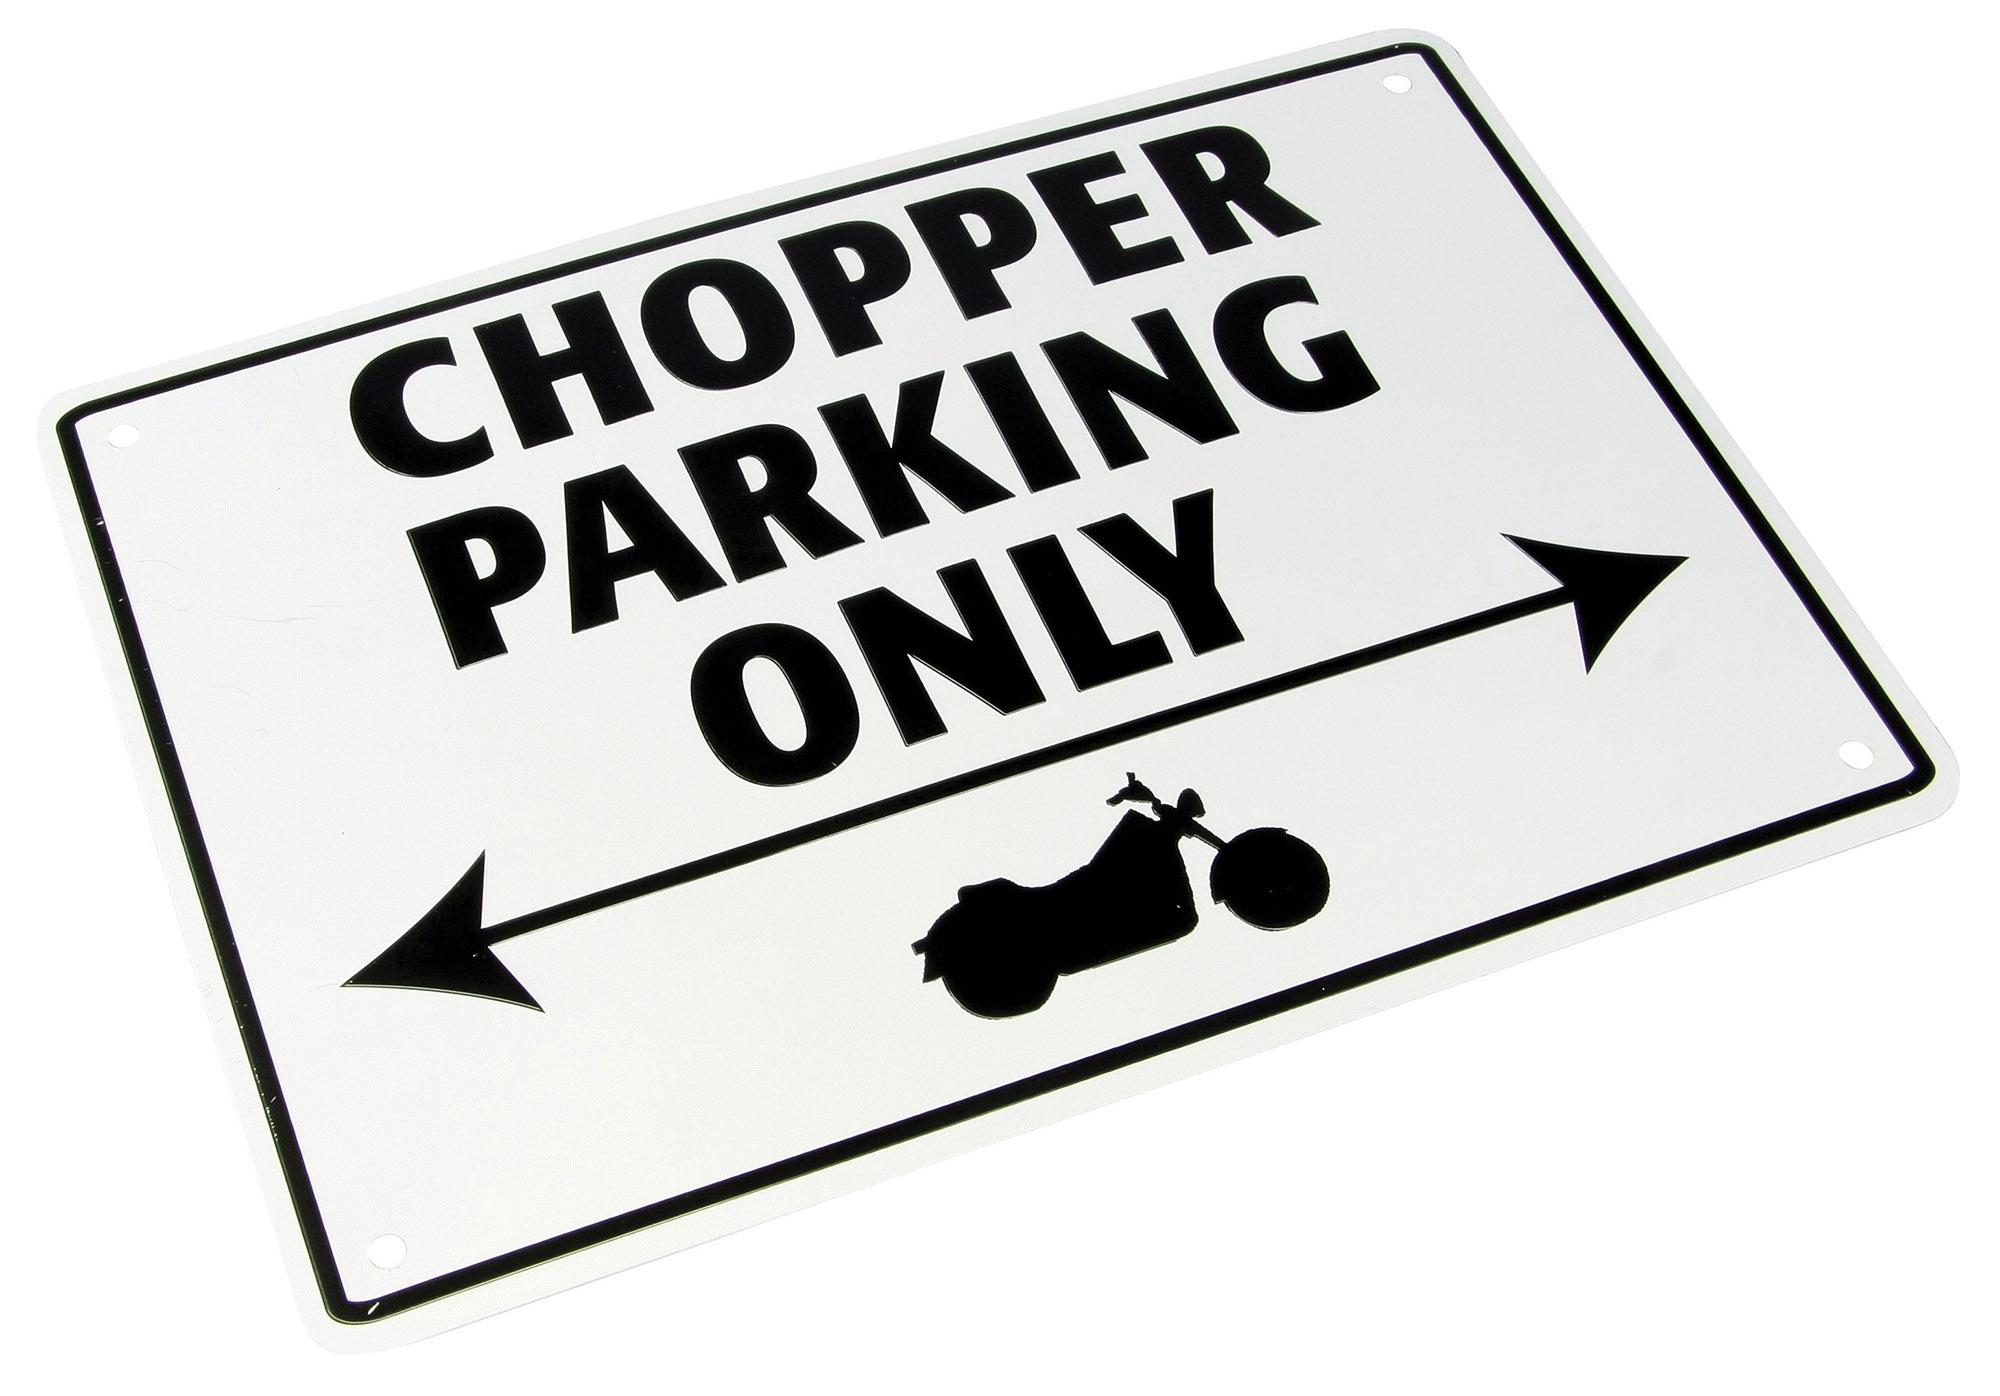 PARKING SIGN Chopper Parking Only